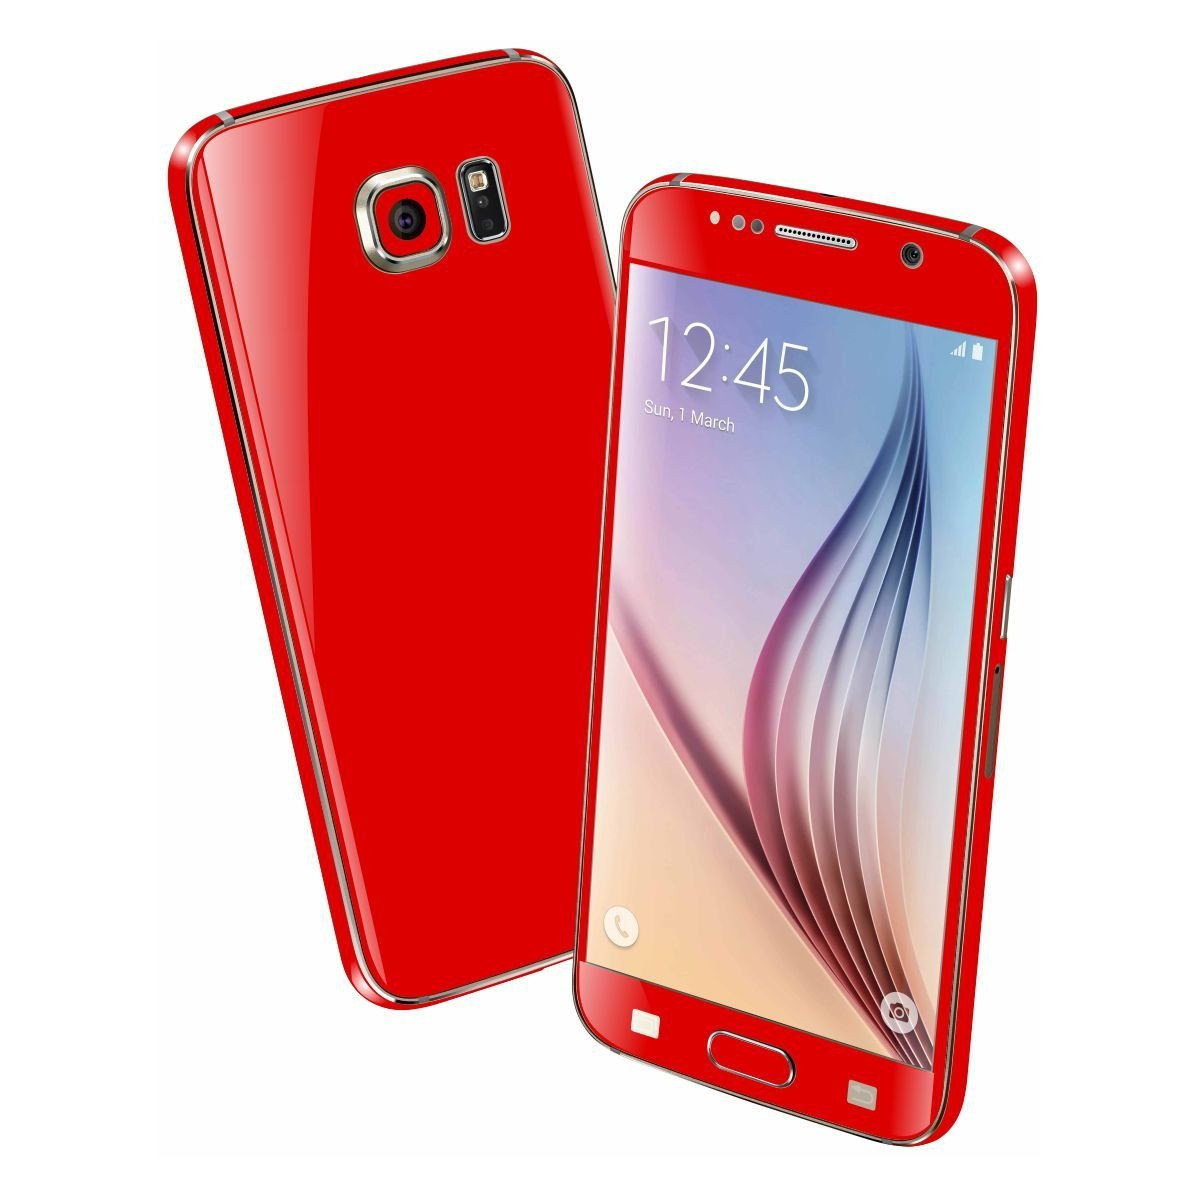 Samsung Galaxy S6 Colorful GLOSS GLOSSY Bright Red Skin Wrap Sticker Cover Protector Decal by EasySkinz